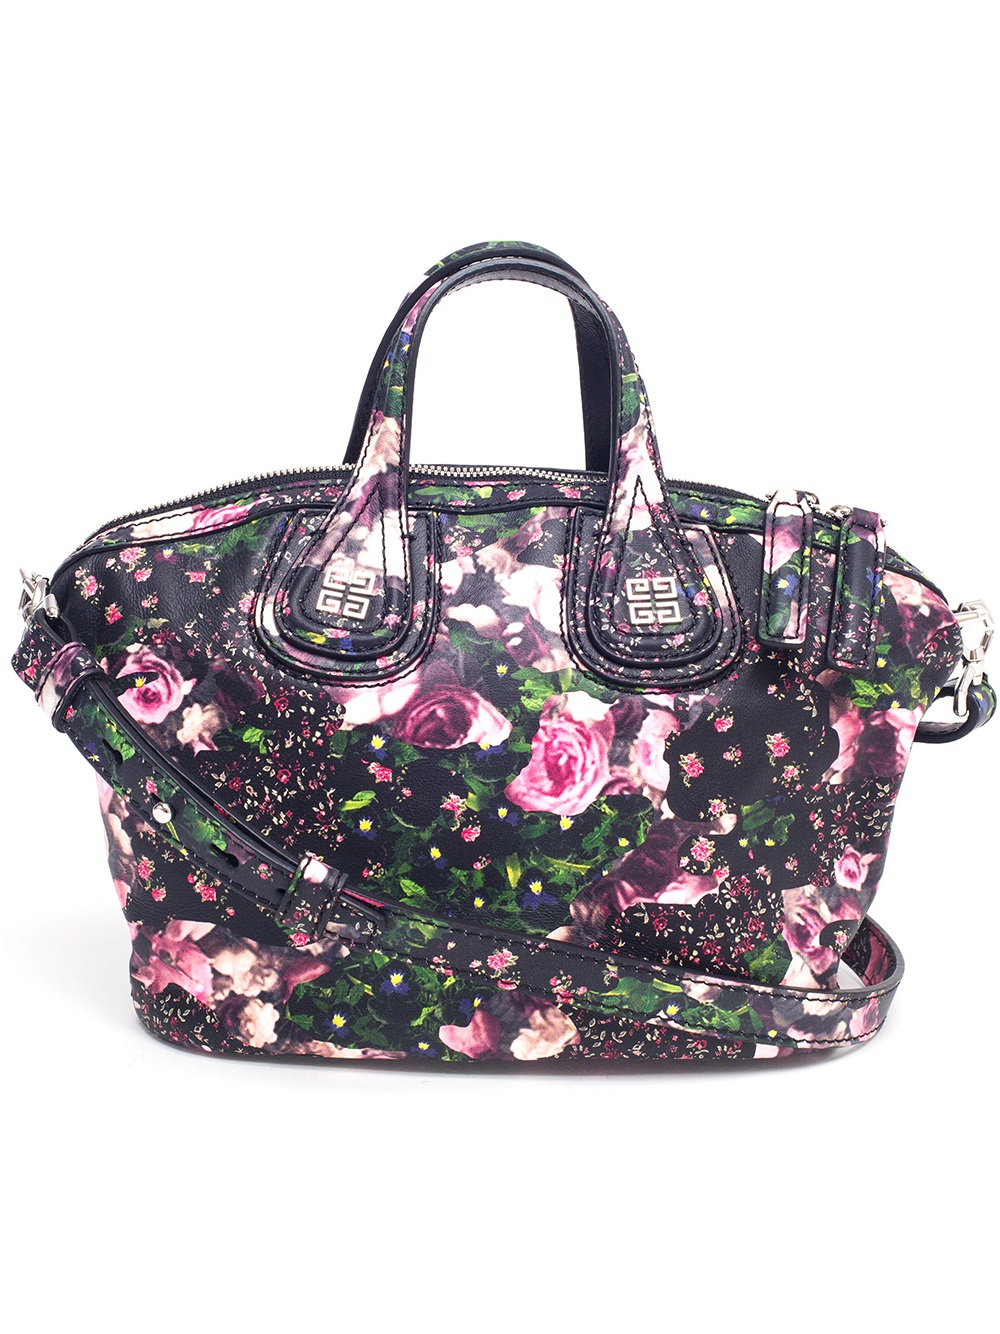 9cade2e1dc05e Lyst - Givenchy Nightingale Micro Floral Leather Bag in Pink